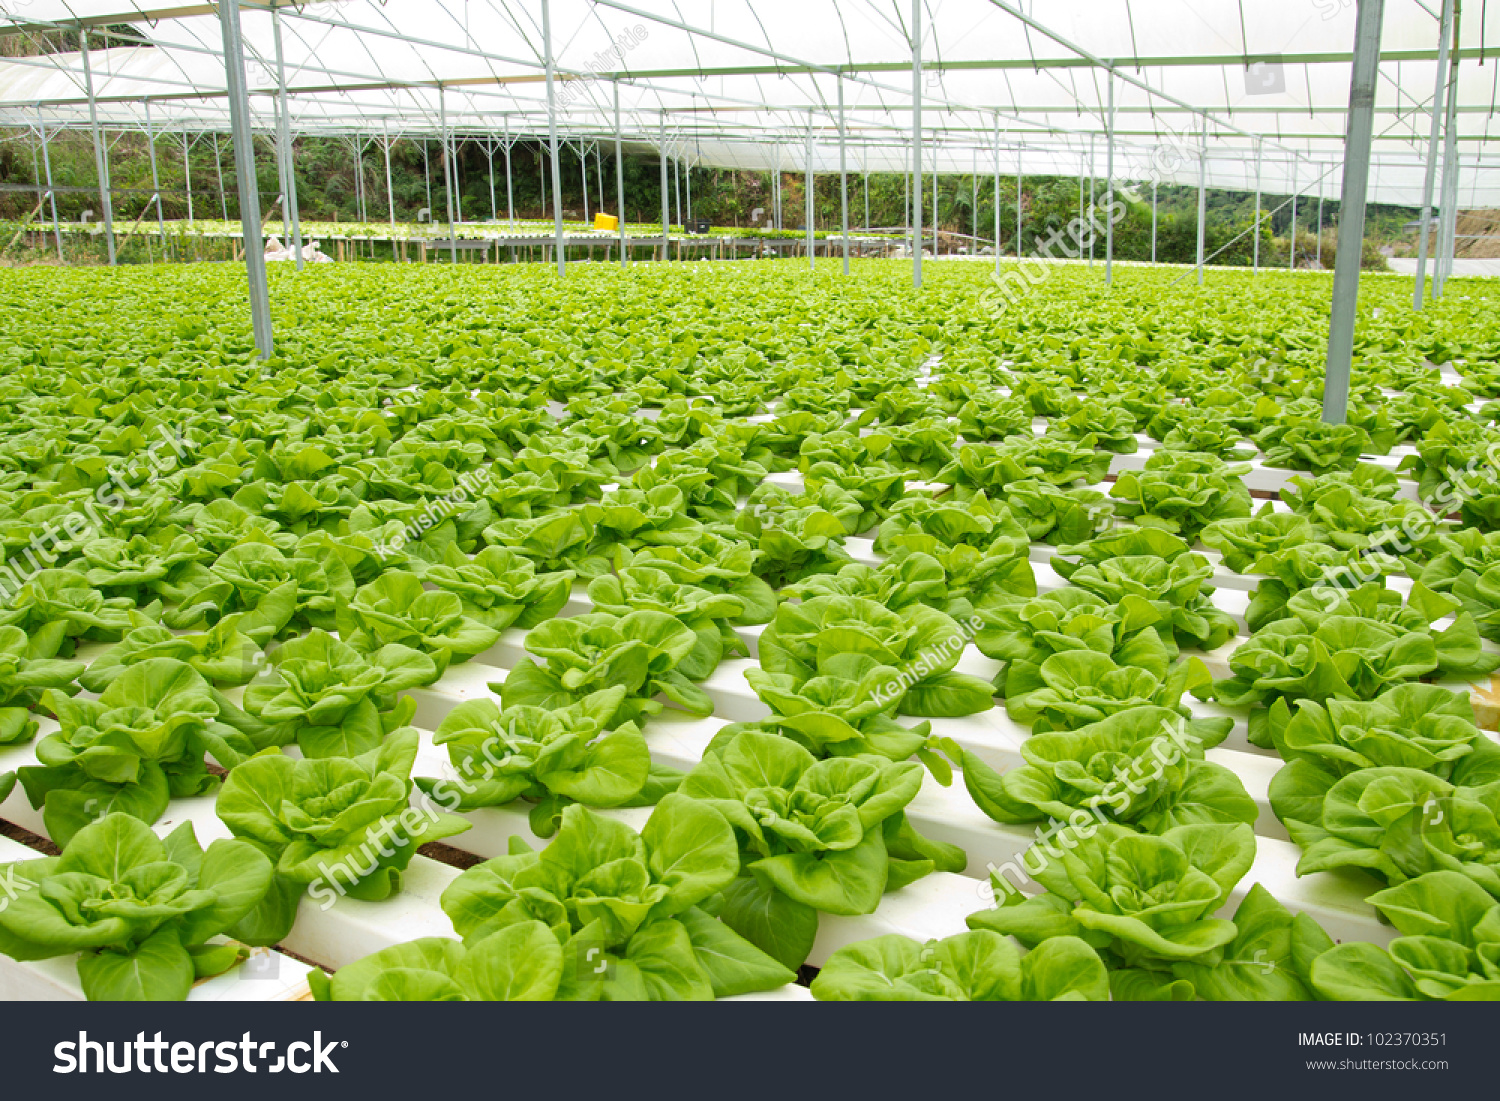 Organic Hydroponic Vegetable Garden Cameron Highlands Stock Photo